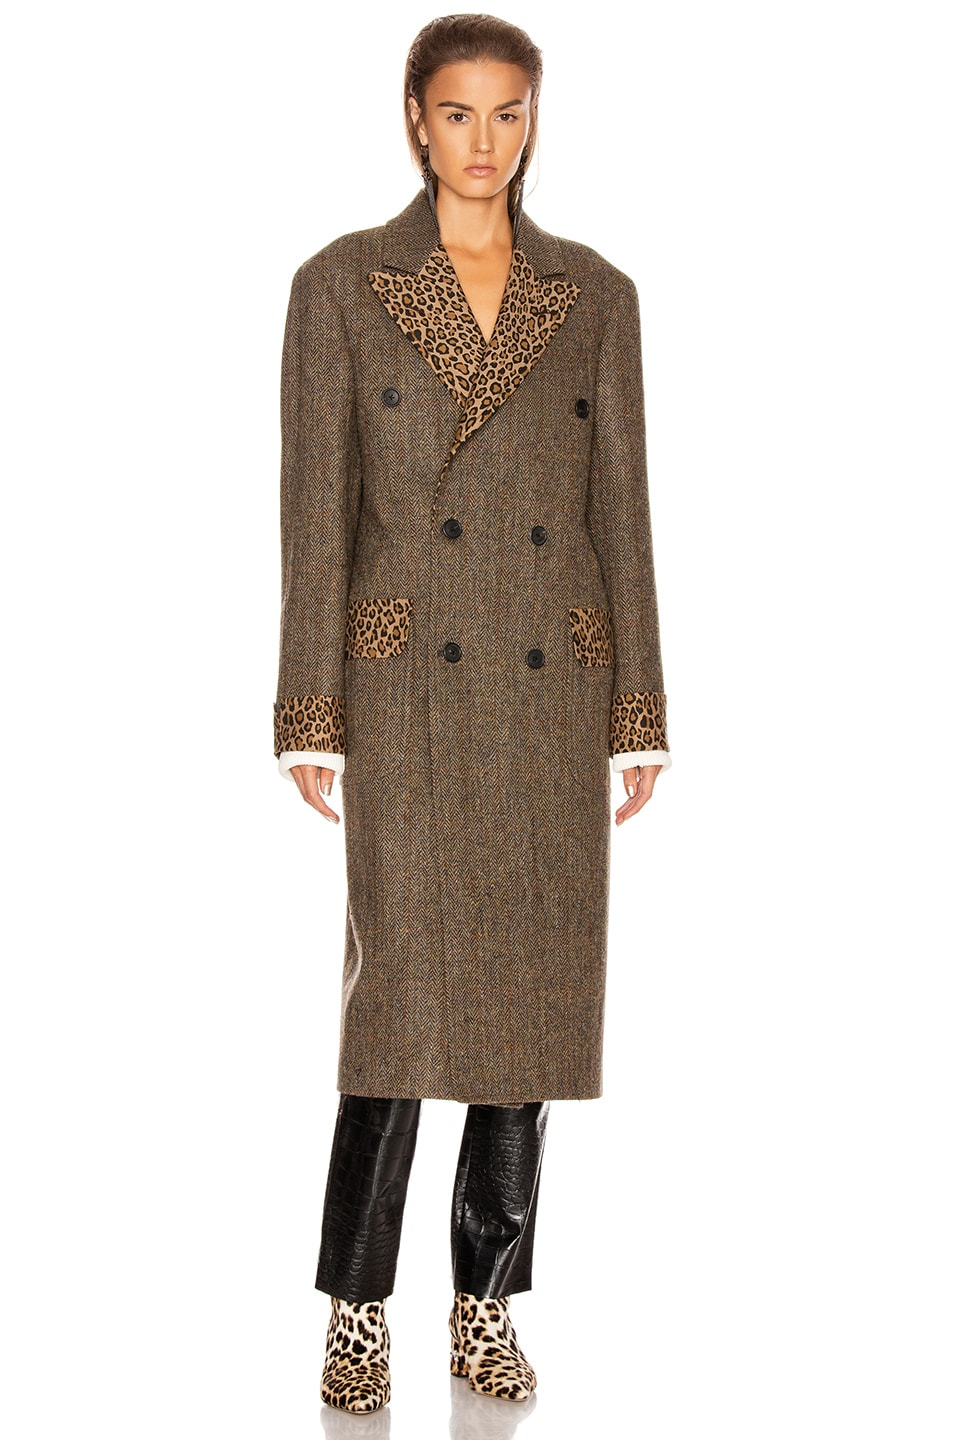 Image 2 of R13 Double Breasted Coat in Green Herringbone with Leopard